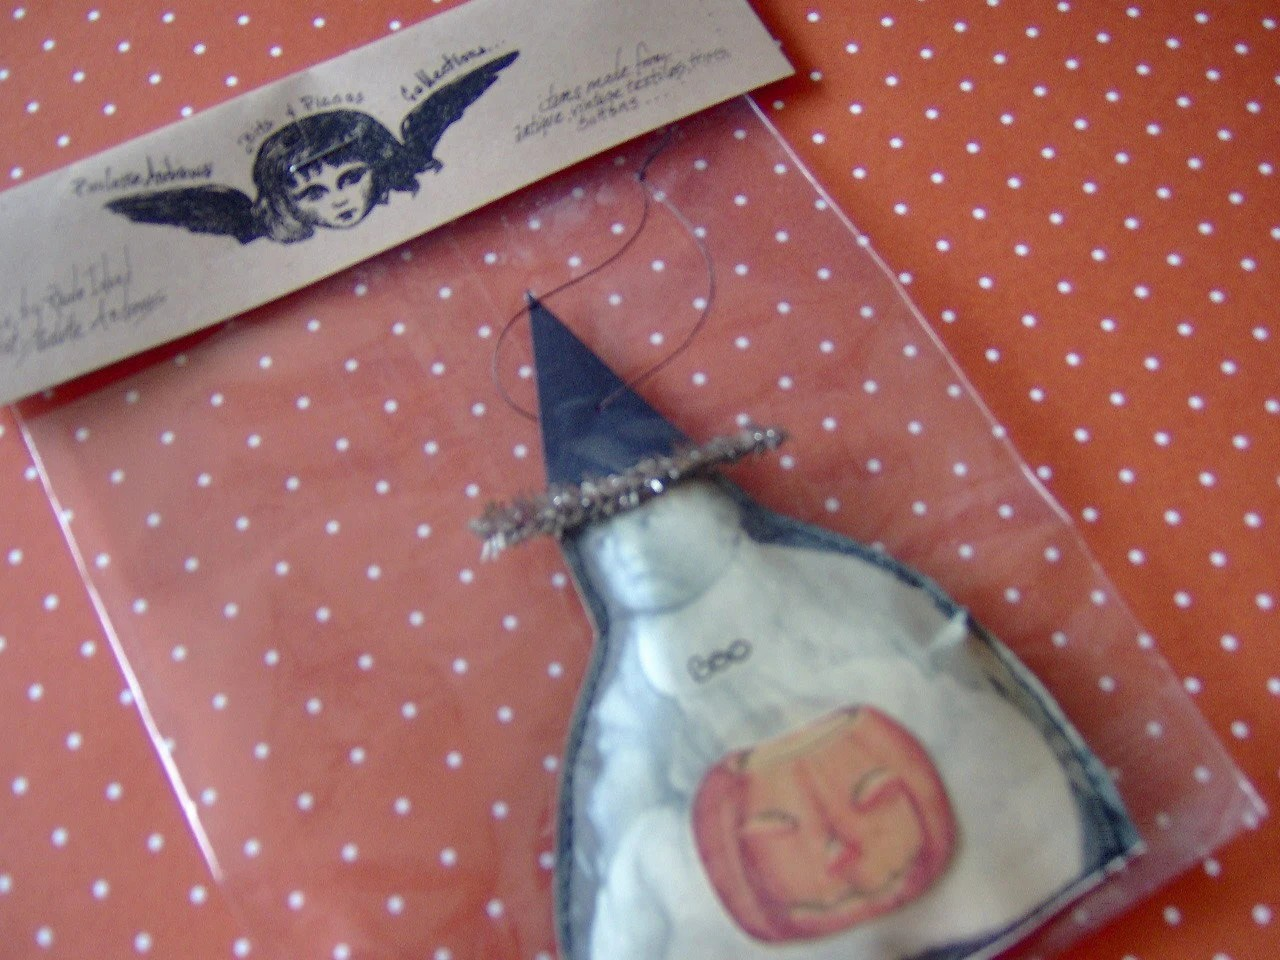 HalloWeeN ORnaMenT Paulette Andrews Baby Photograph Collage CSST